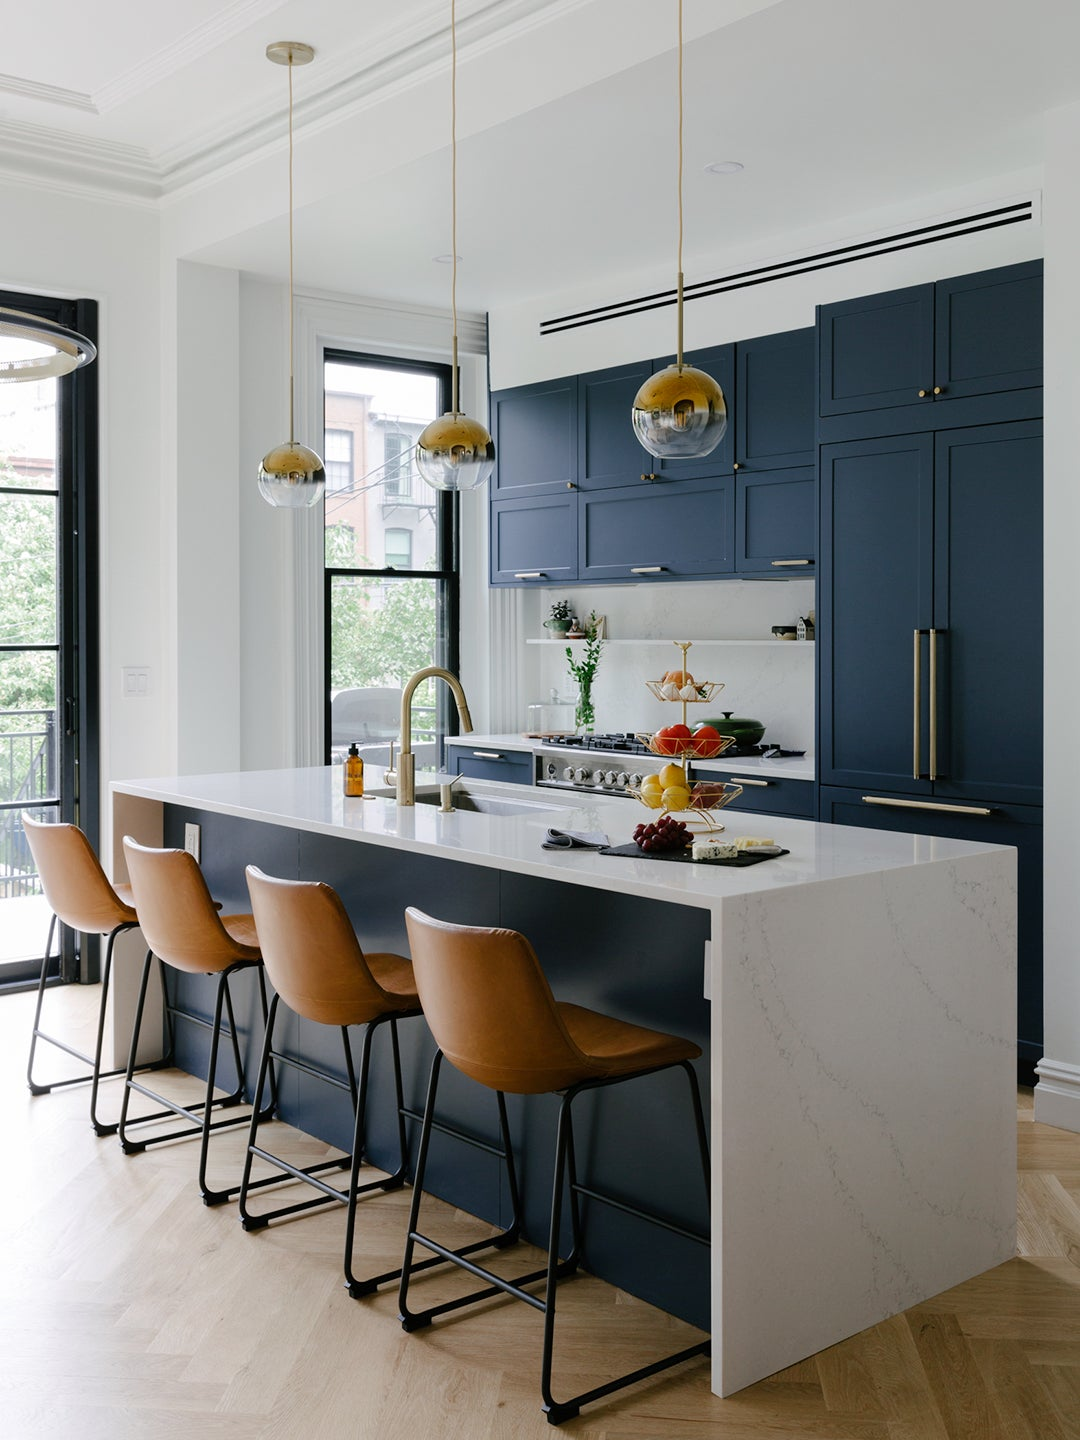 A Platform Tub and Mismatched Floors Didn't Deter These First-Time Brownstone Buyers